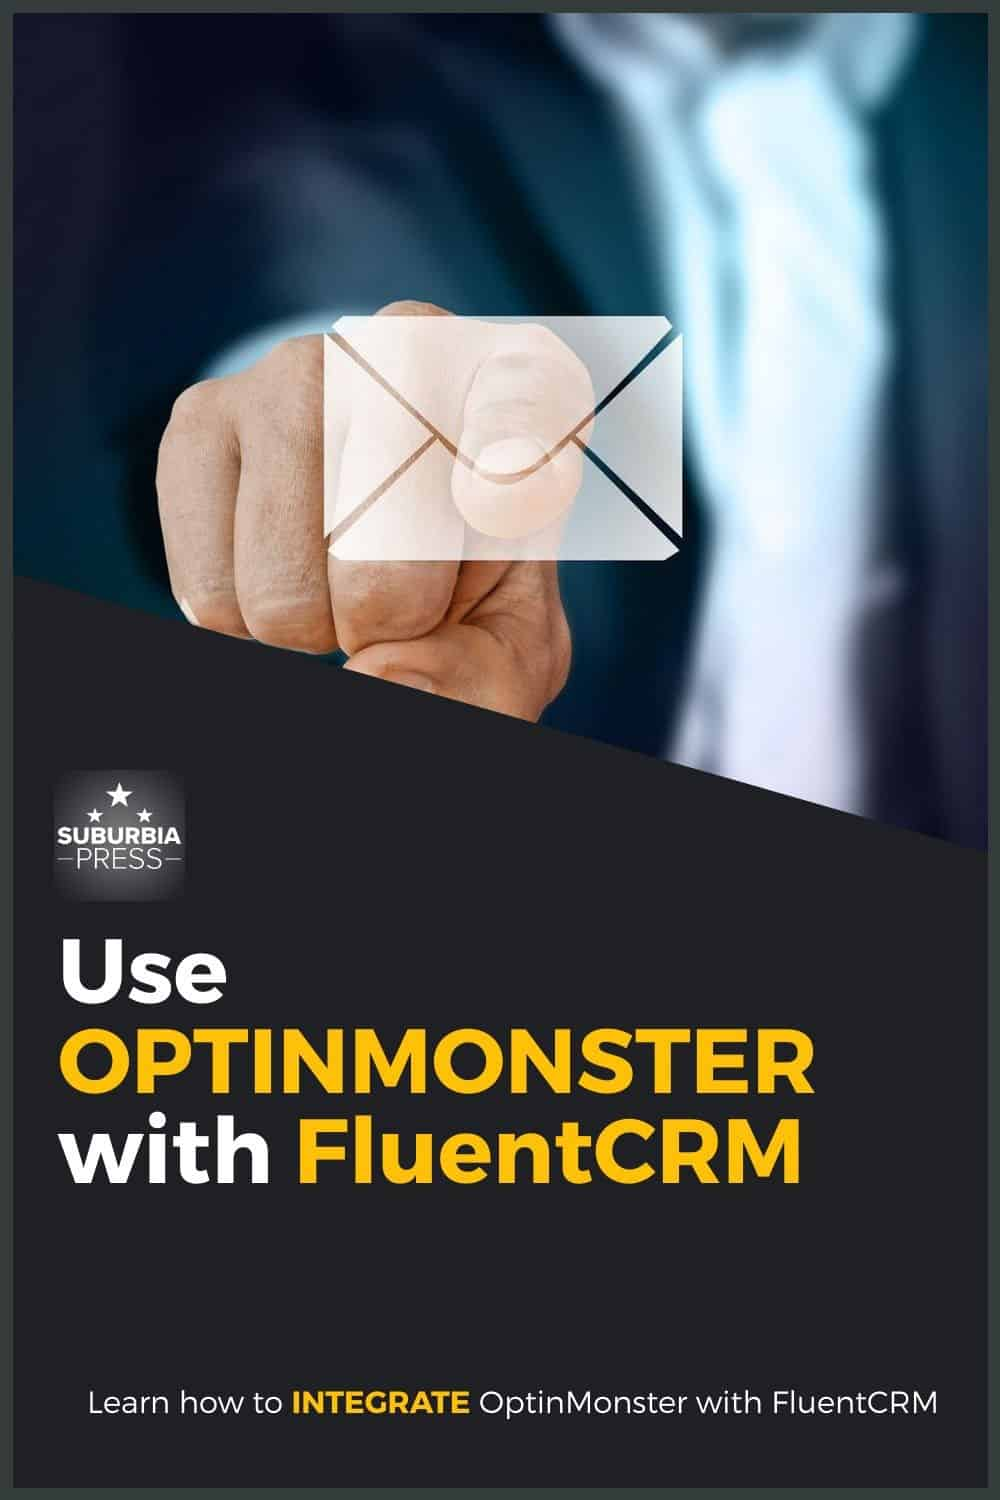 How to Use OptinMonster with FluentCRM